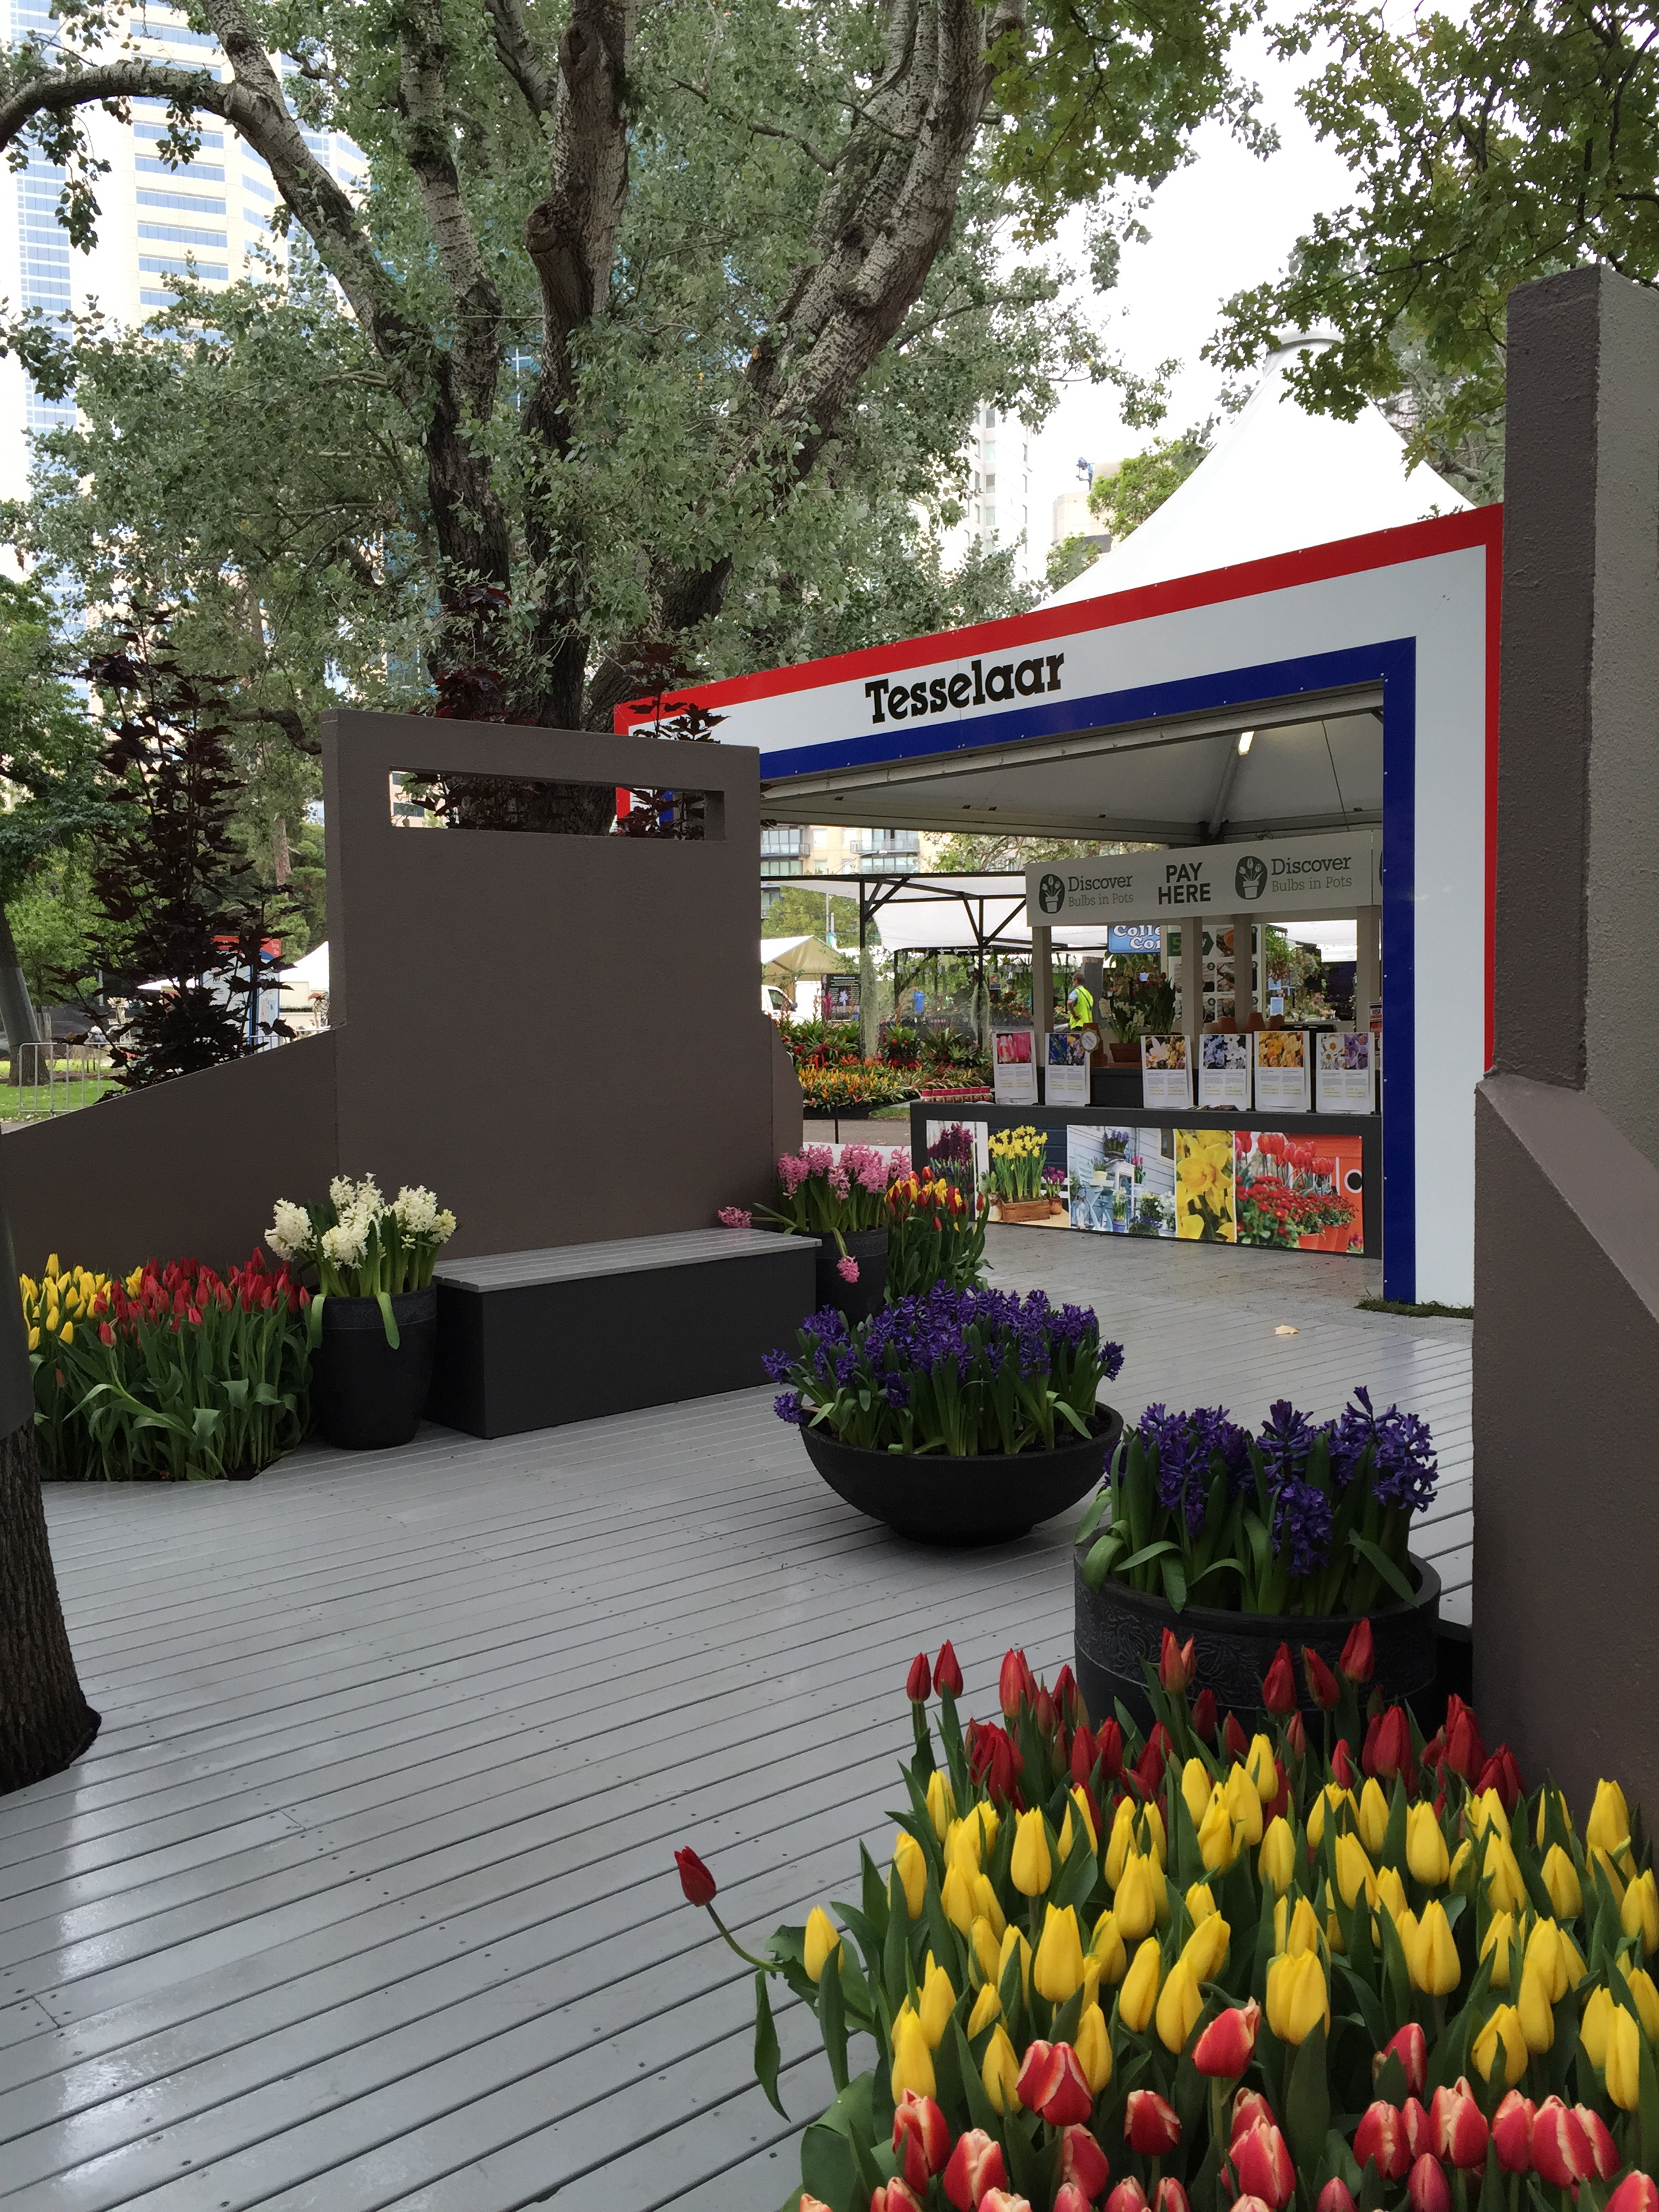 Melbourne International Flower & Garden Show